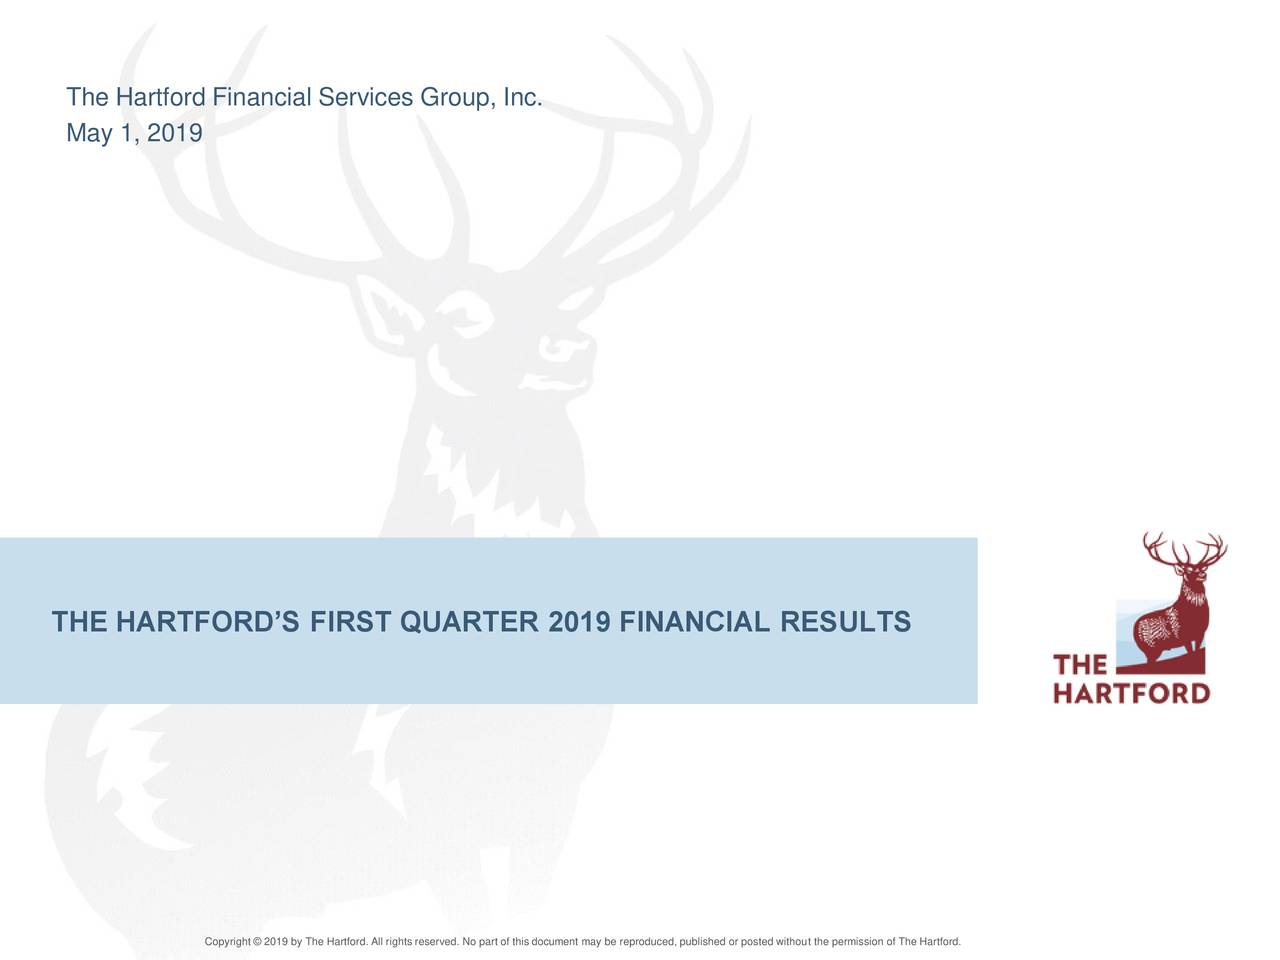 May 1, 2019 THE HARTFORD'S FIRST QUARTER 2019 FINANCIAL RESULTS Copyright © 2019 by The Hartford. All rights reserved. No part of this document may be reproduced, published or posted without the permission of The Hartford.